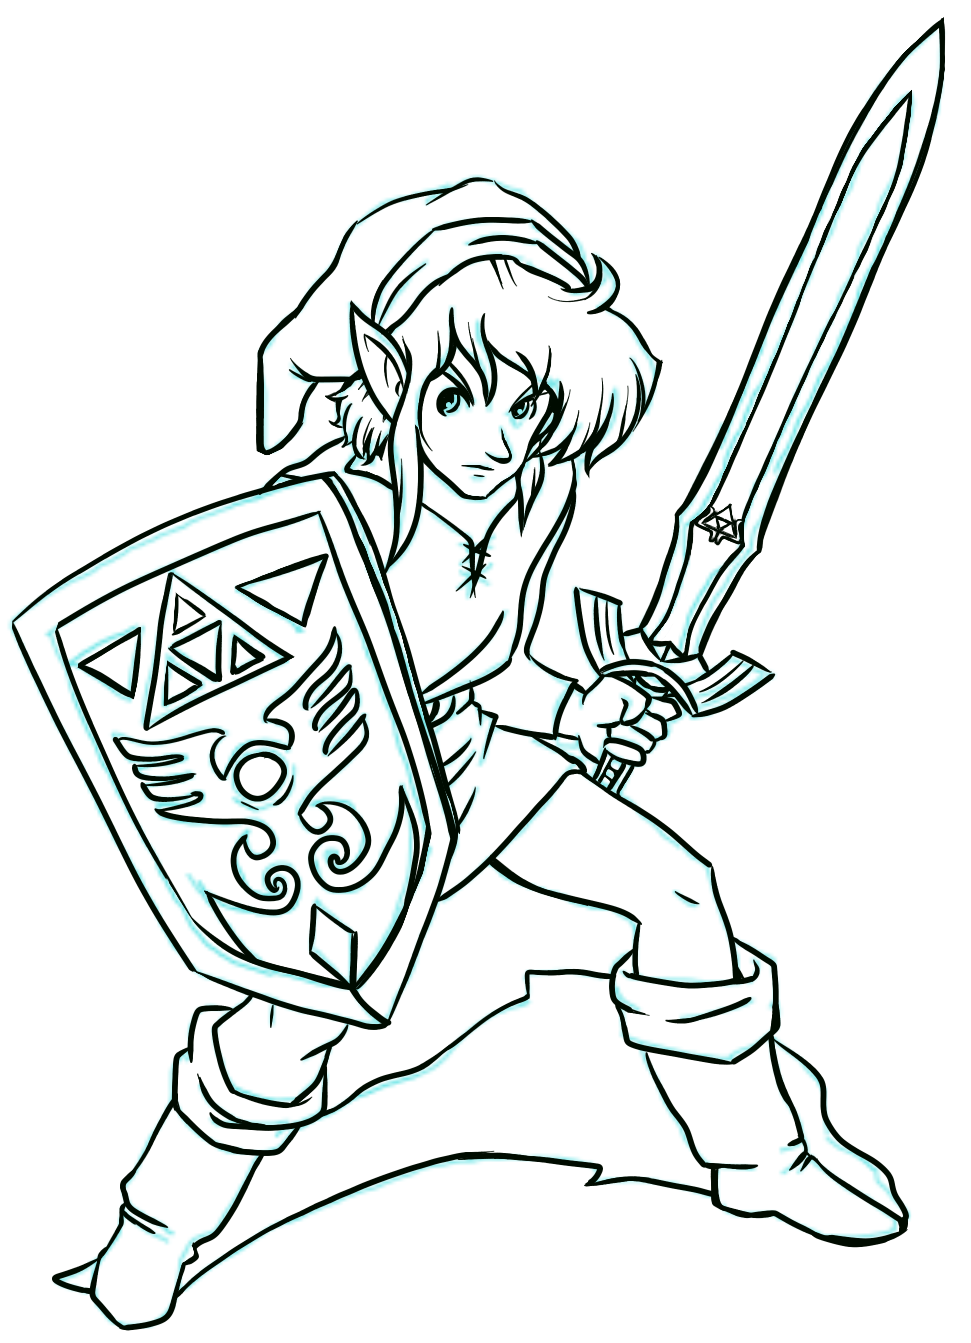 Link To The Past Line Art Visit Blazezelda Tumblr Com Coloring Pages Line Art Colouring Pages